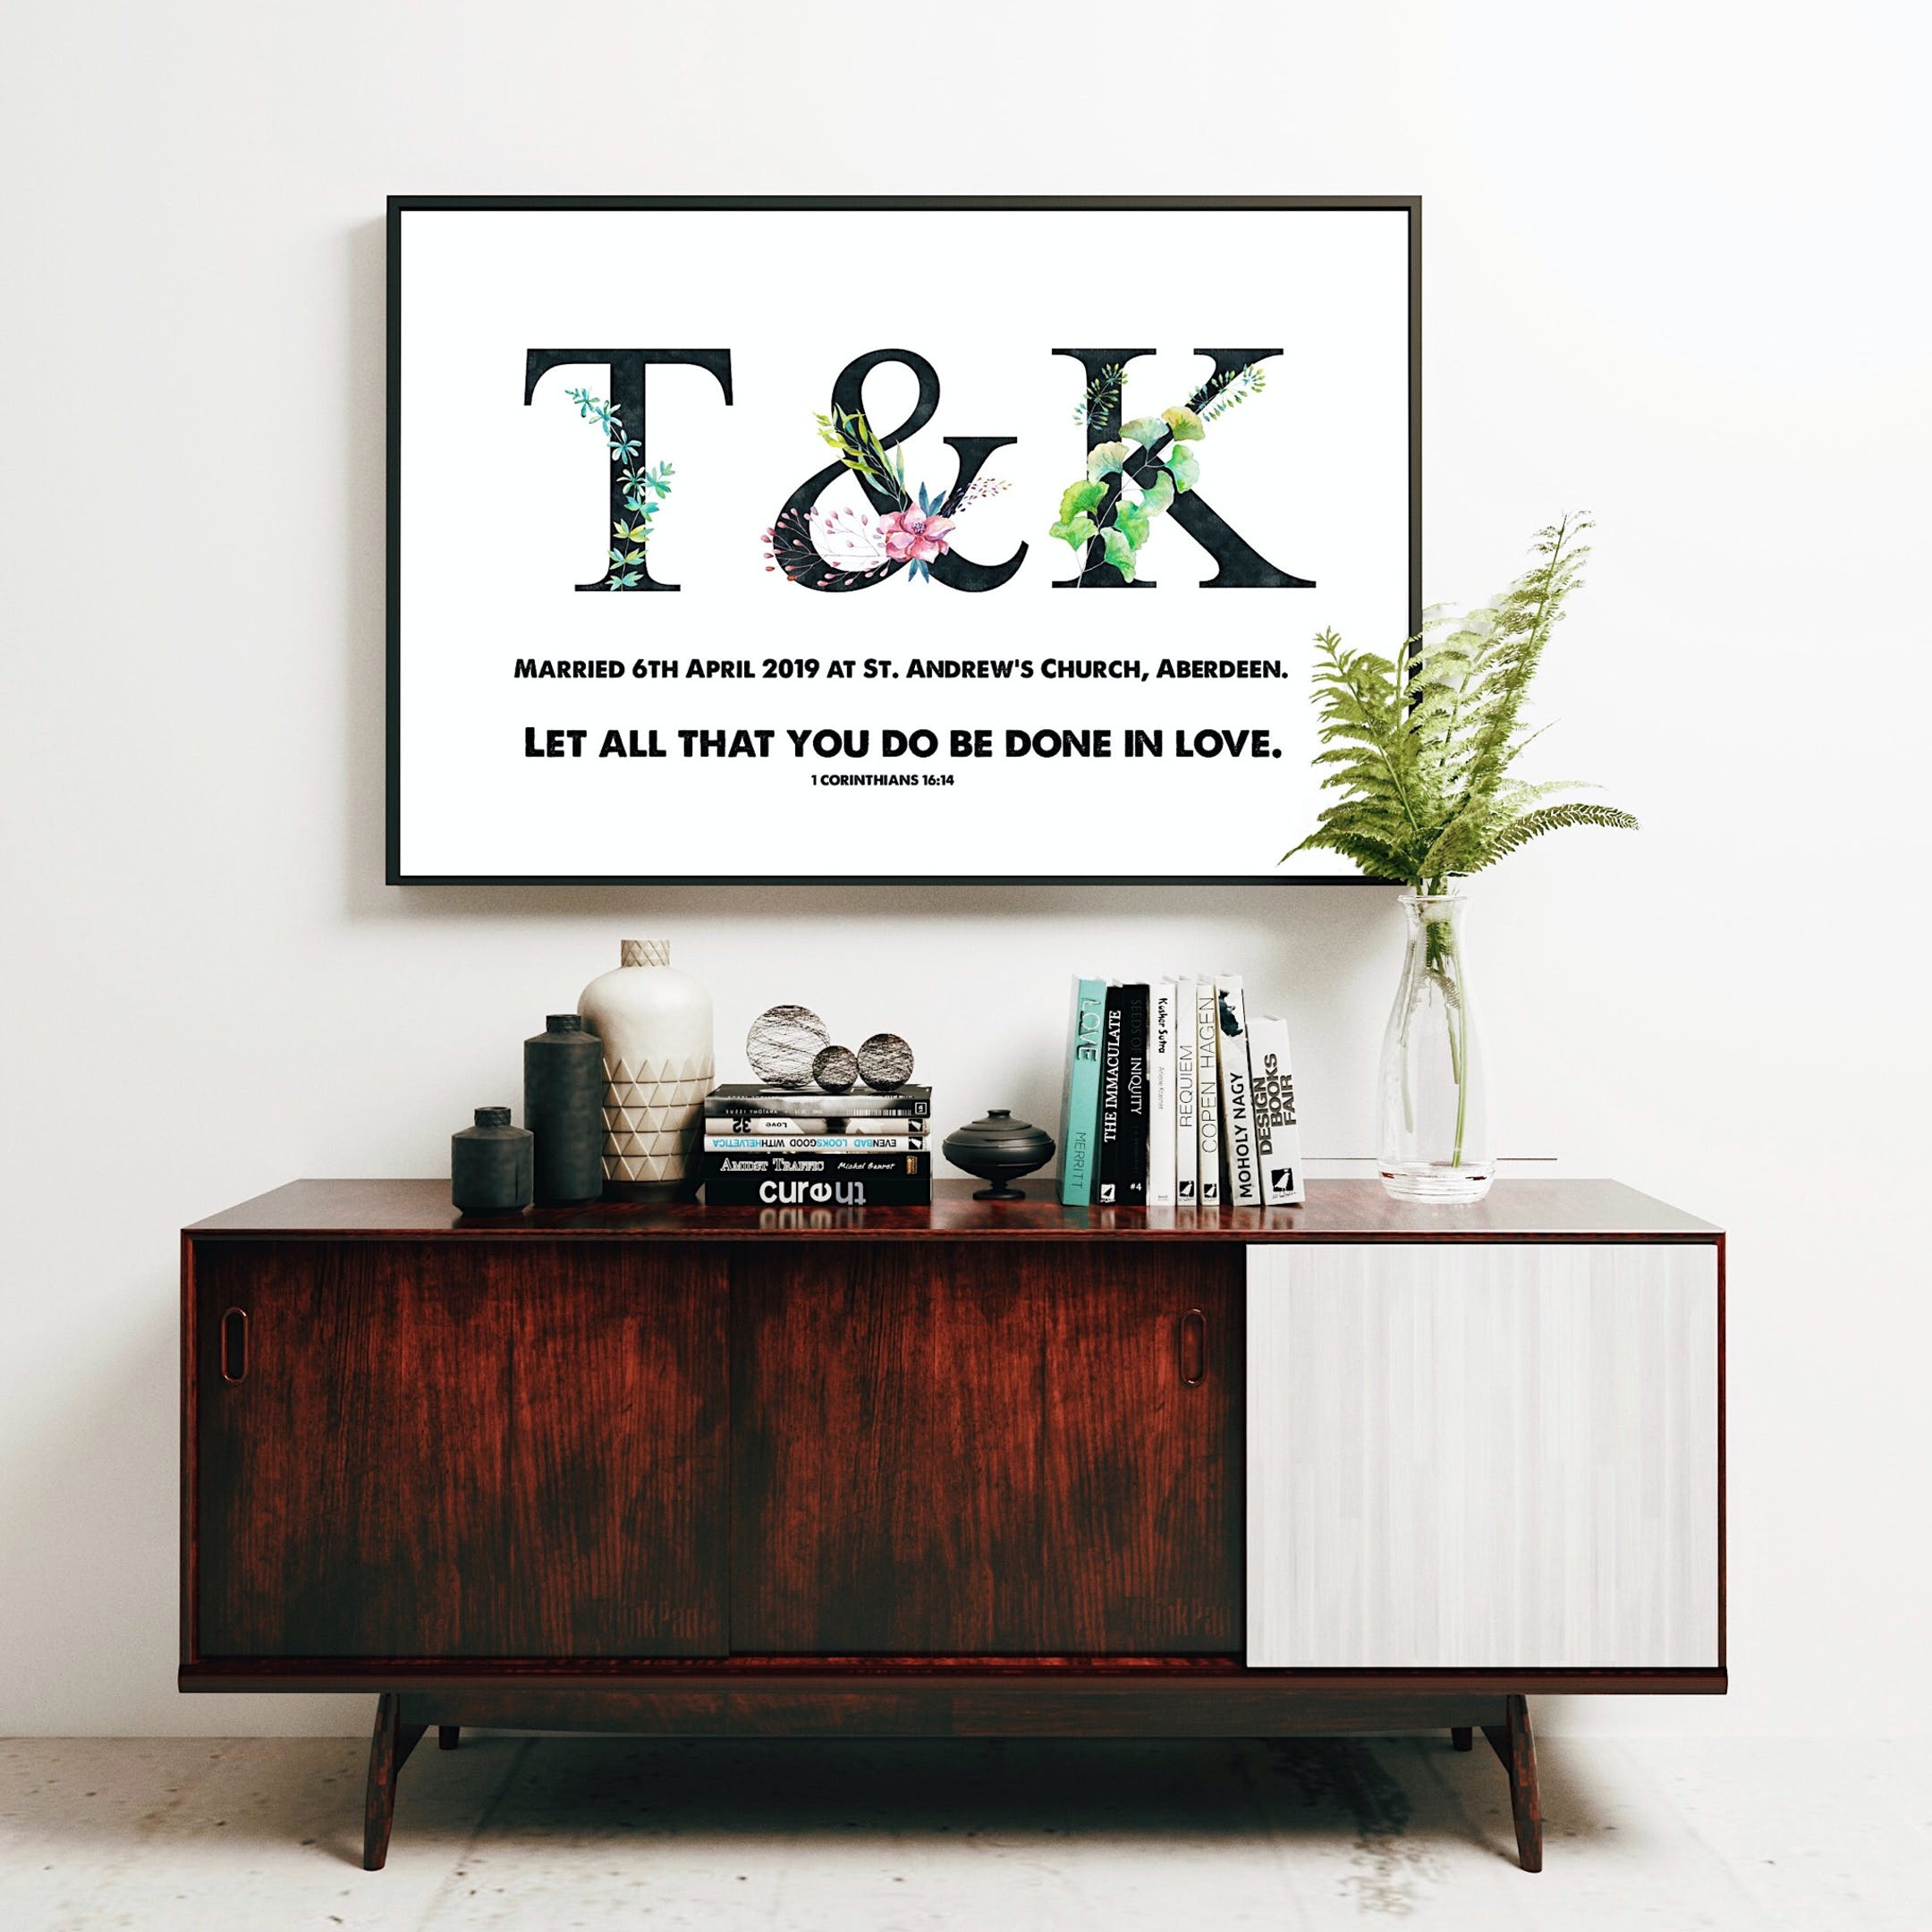 Personalised Wedding Print T&K - Let All That You Do Be Done In Love - 1 Corinthians 16:14 - Izzy & Pop